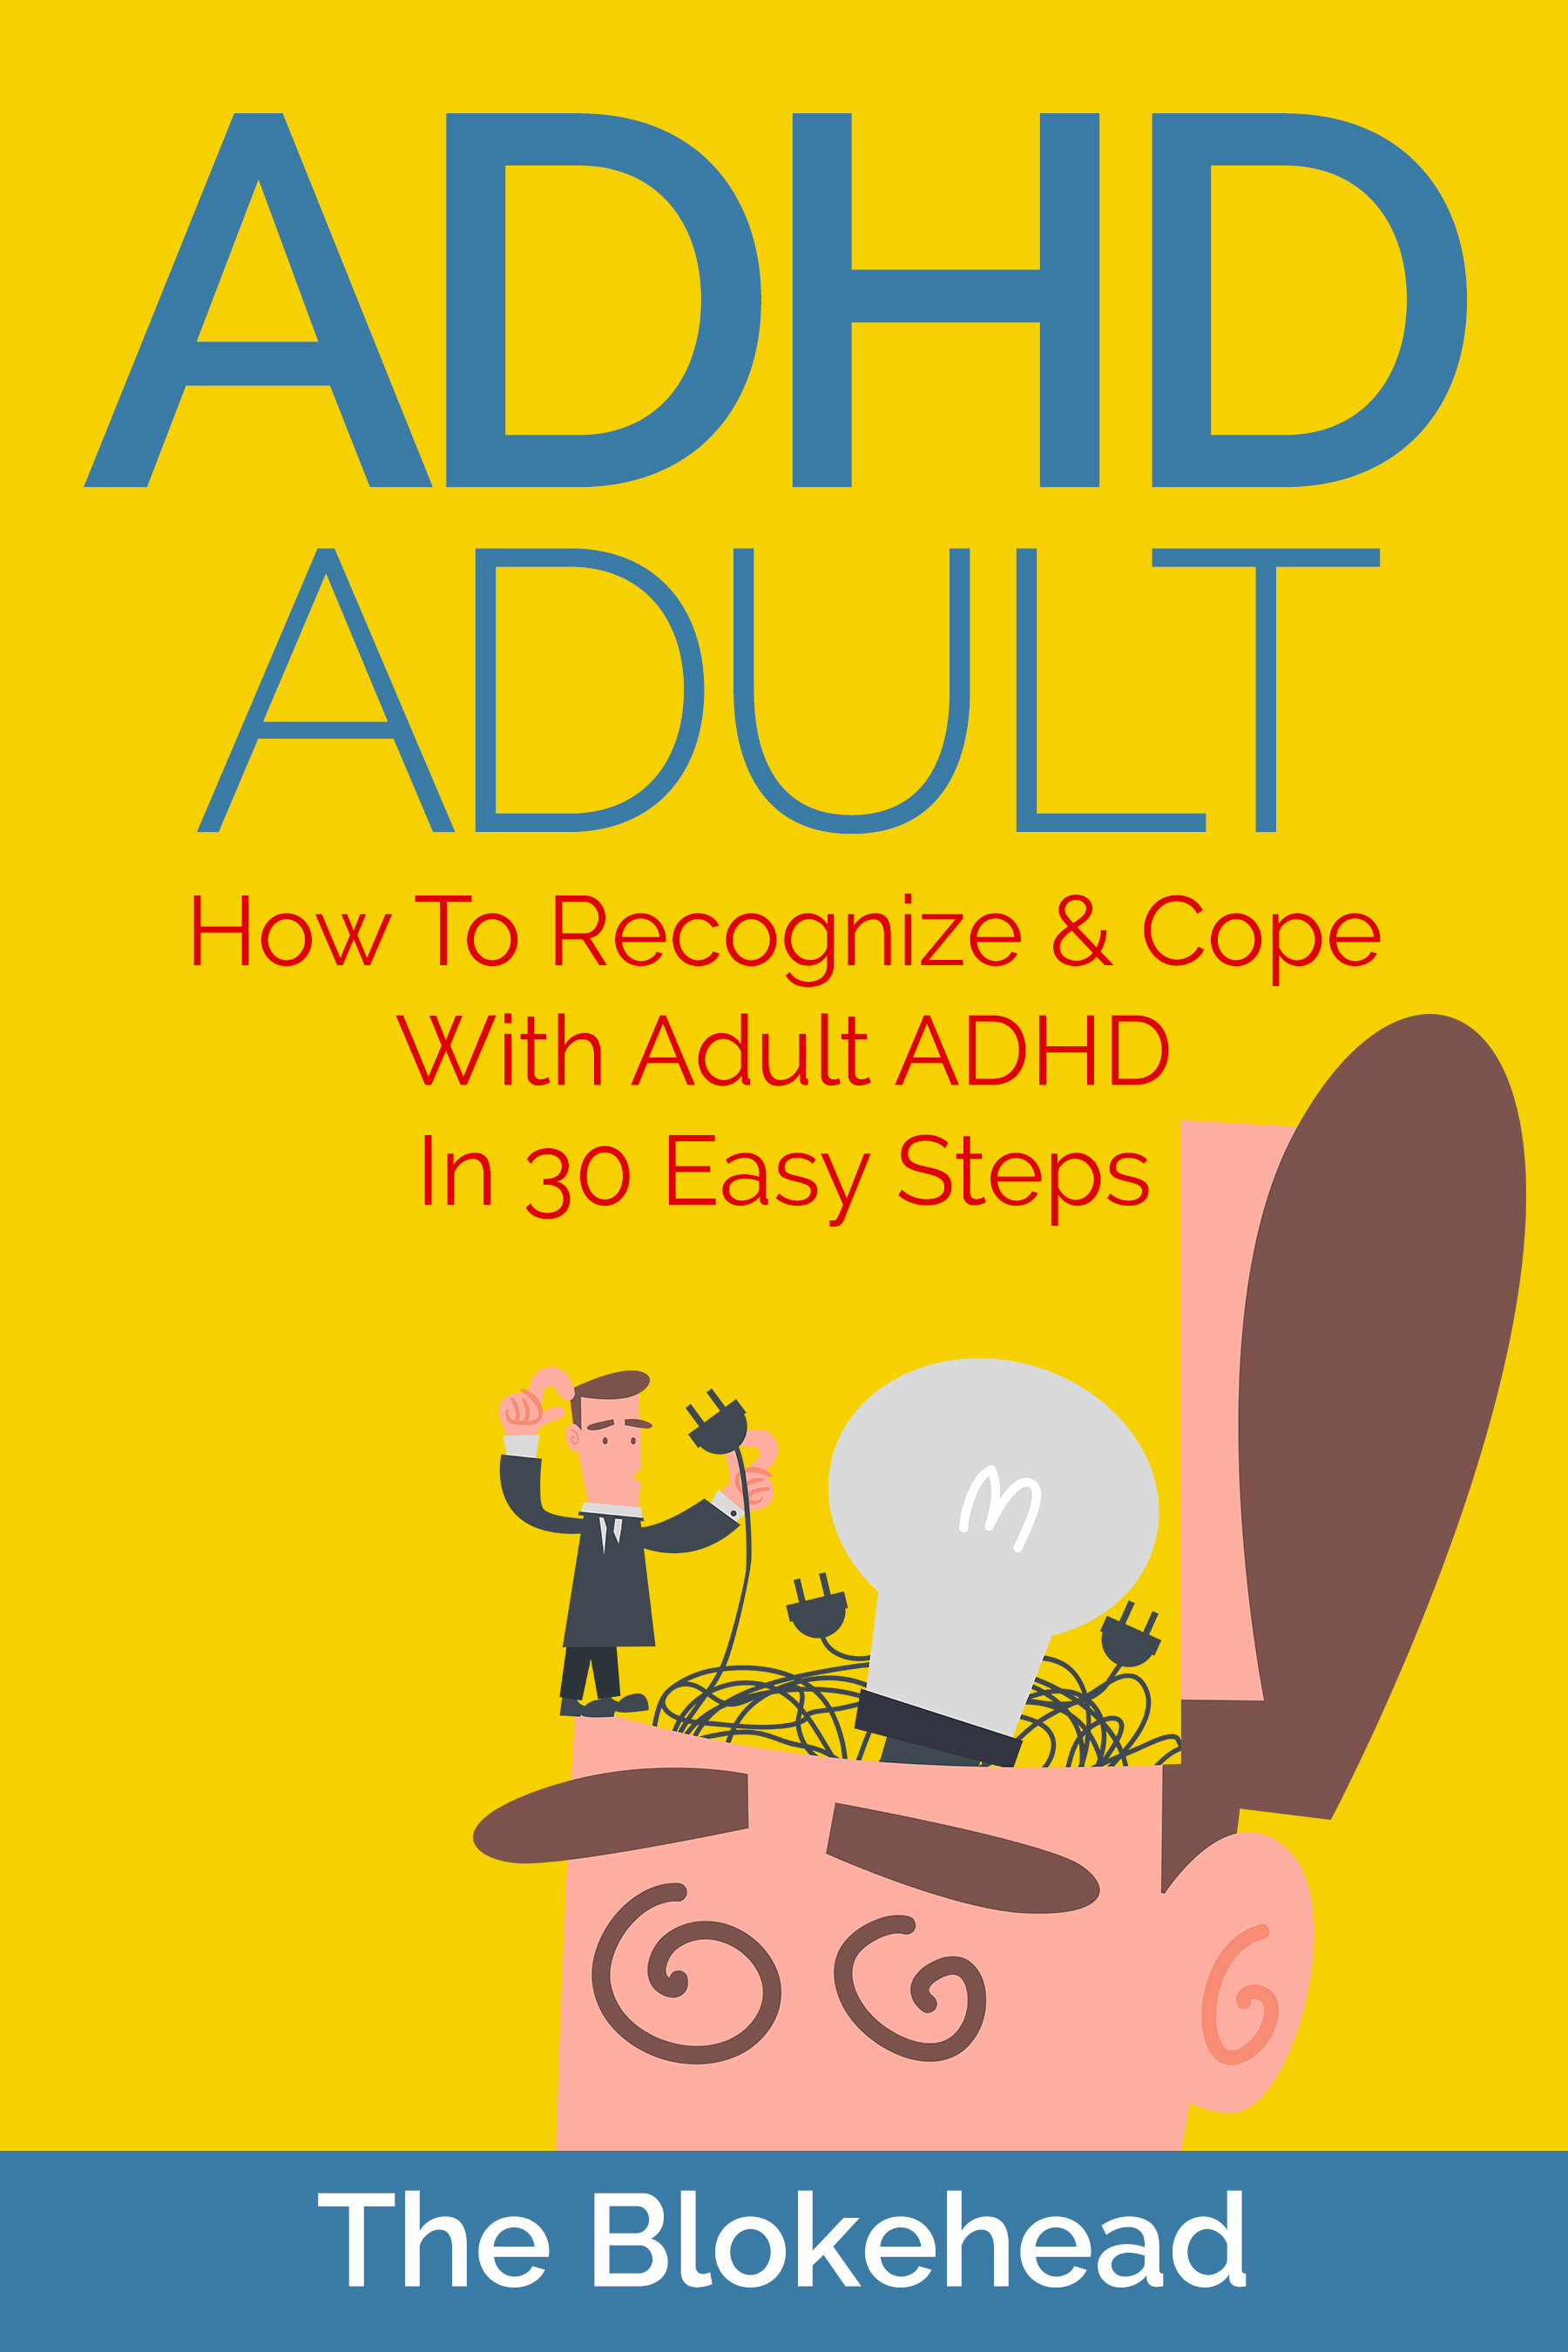 Adhd adult : how to recognize & cope with adult adhd in 30 easy steps